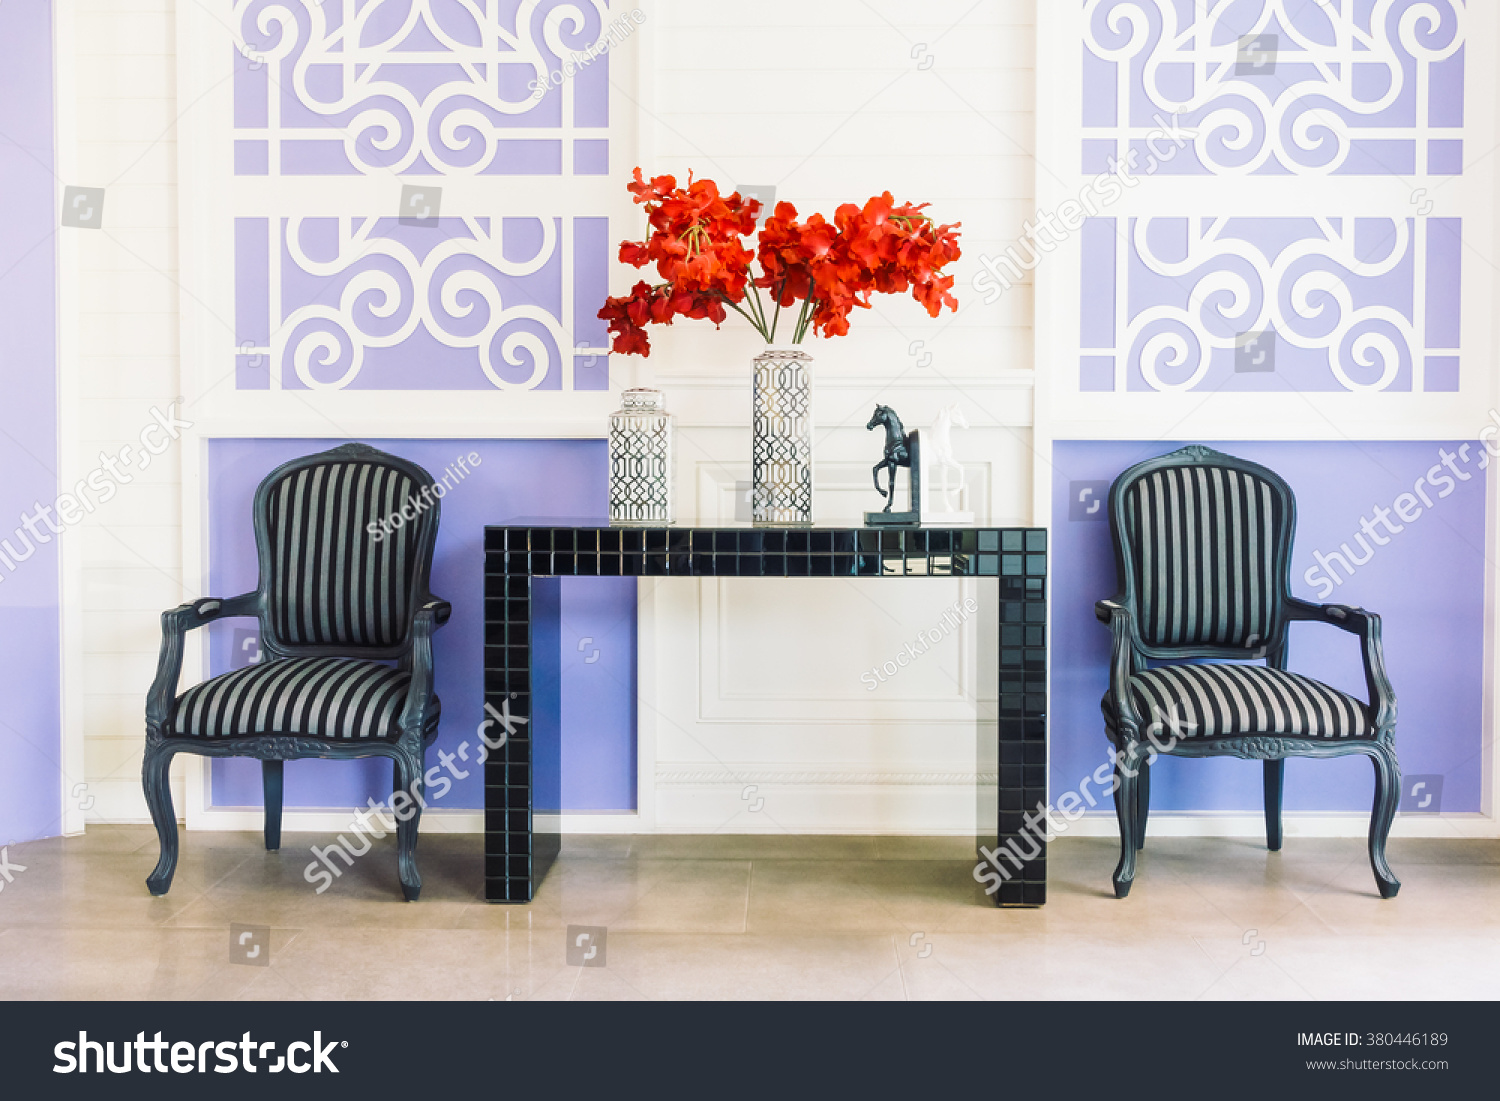 Empty chair in room - Beautiful Vase Flower And Empty Chair Decoration Interior Of Livingroom Vintage Film Filter